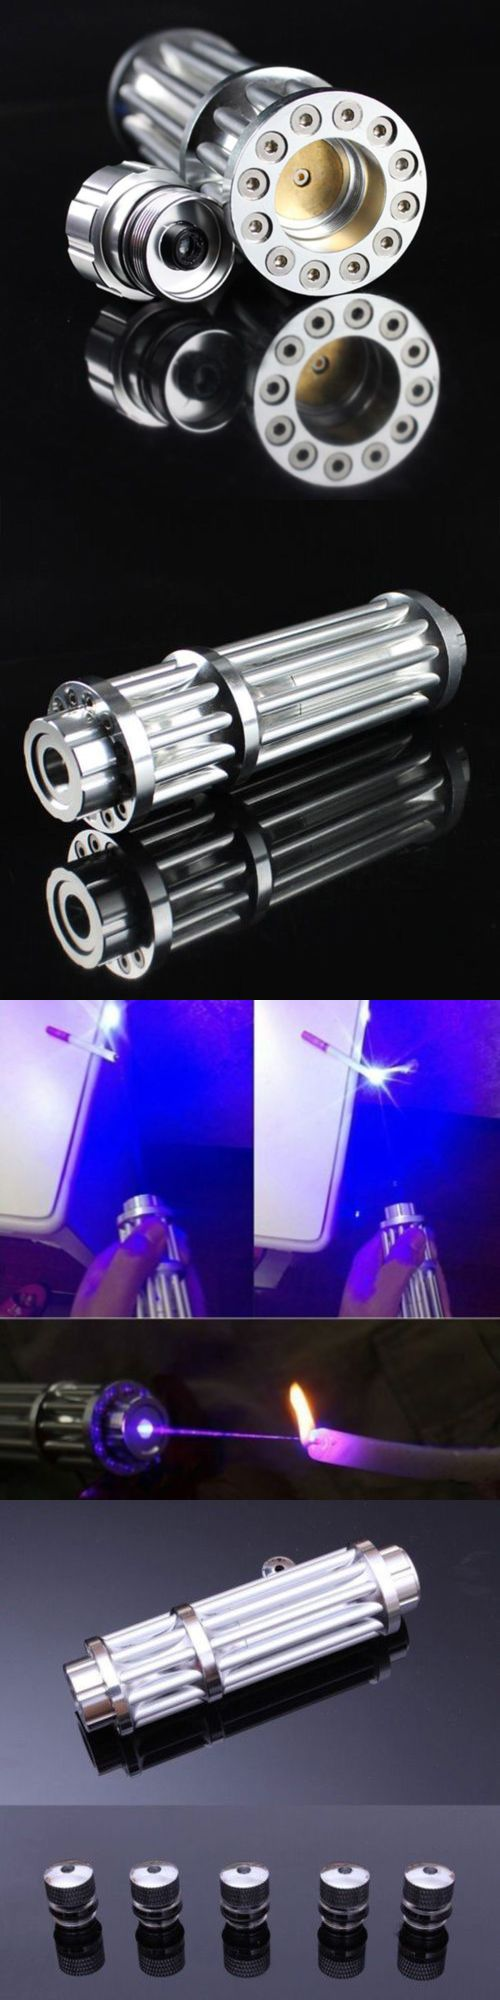 Laser Pointers: Military 1W 405Nm Blue Purple Laser Pointer Pen Power Beam Burn Cigarette Match -> BUY IT NOW ONLY: $65.99 on eBay!